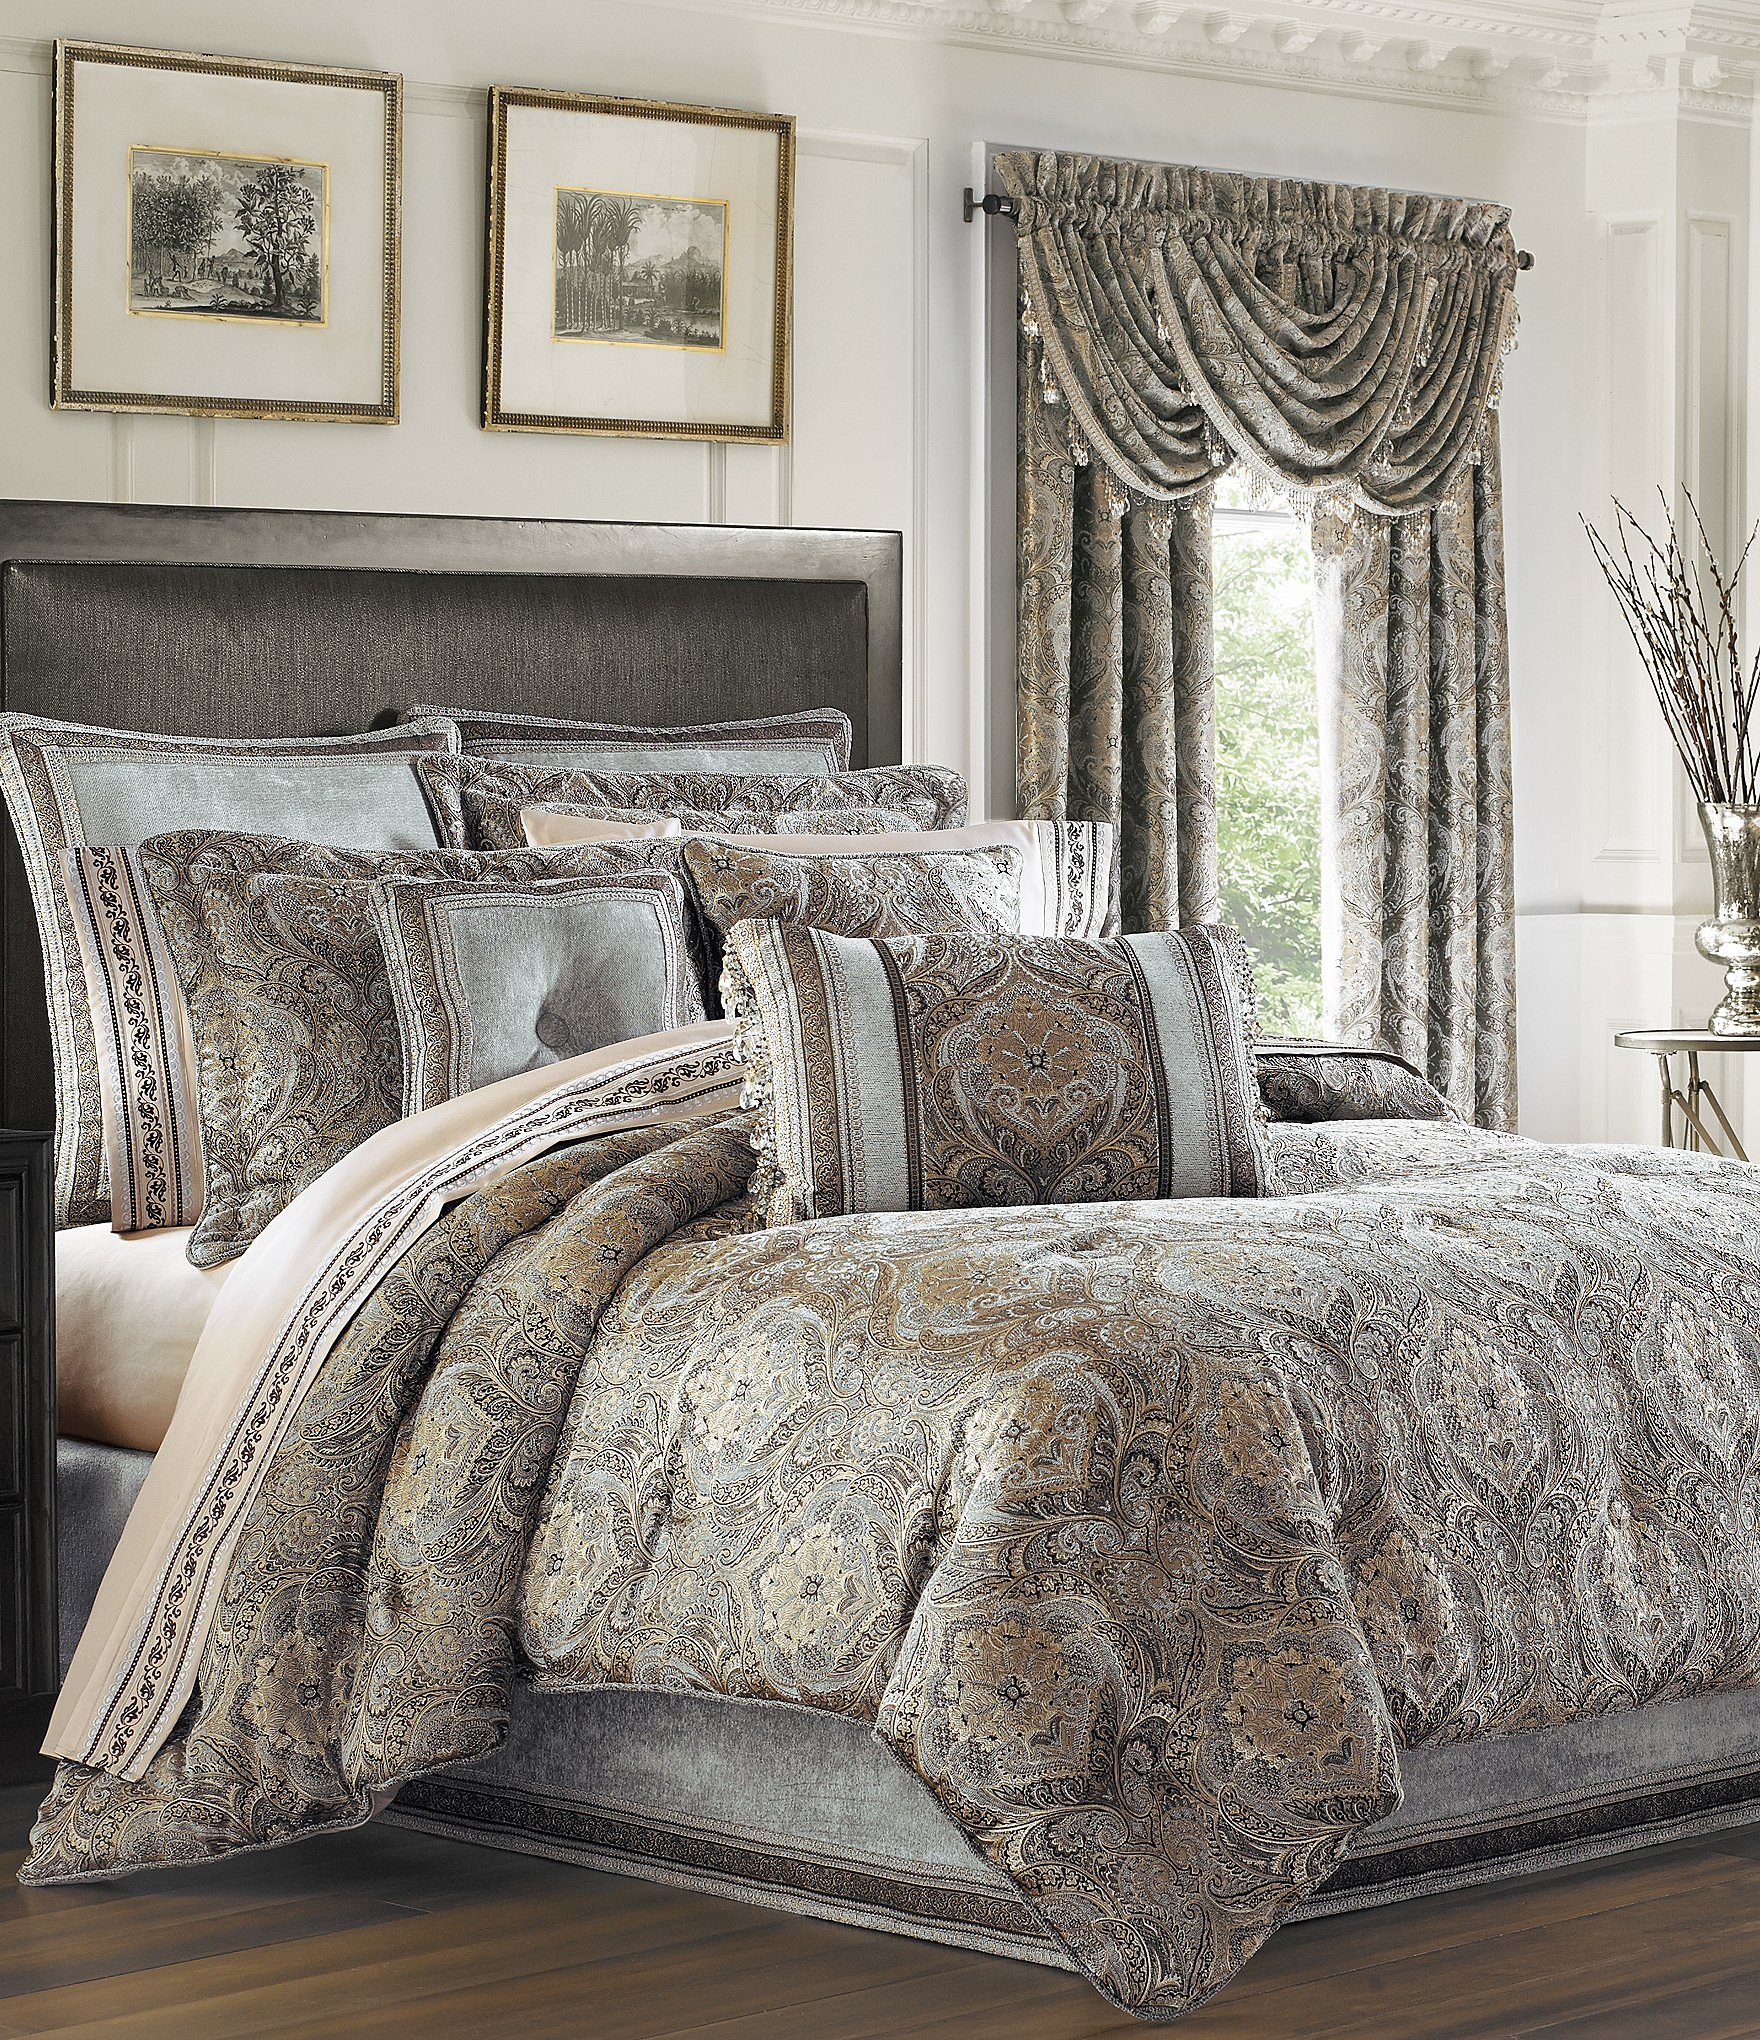 Well-known Bedding & Bedding Collections| Dillards PC85